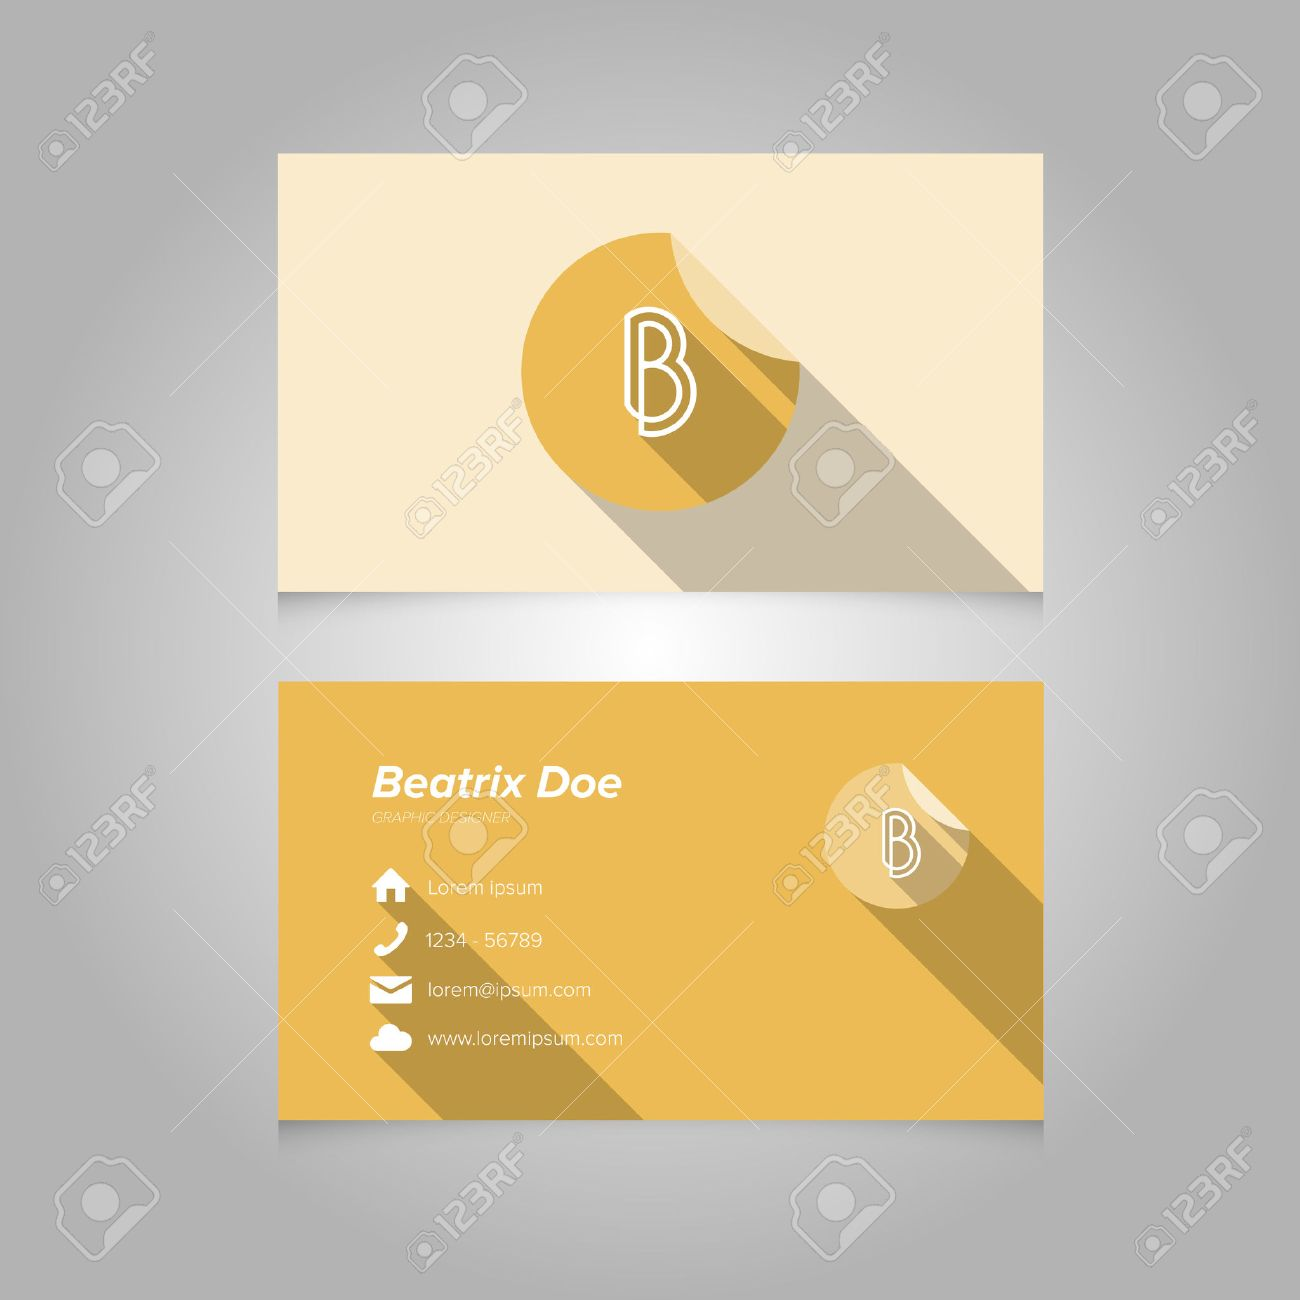 Simple Business Card Template With Alphabet Letter B - Flat Design ...